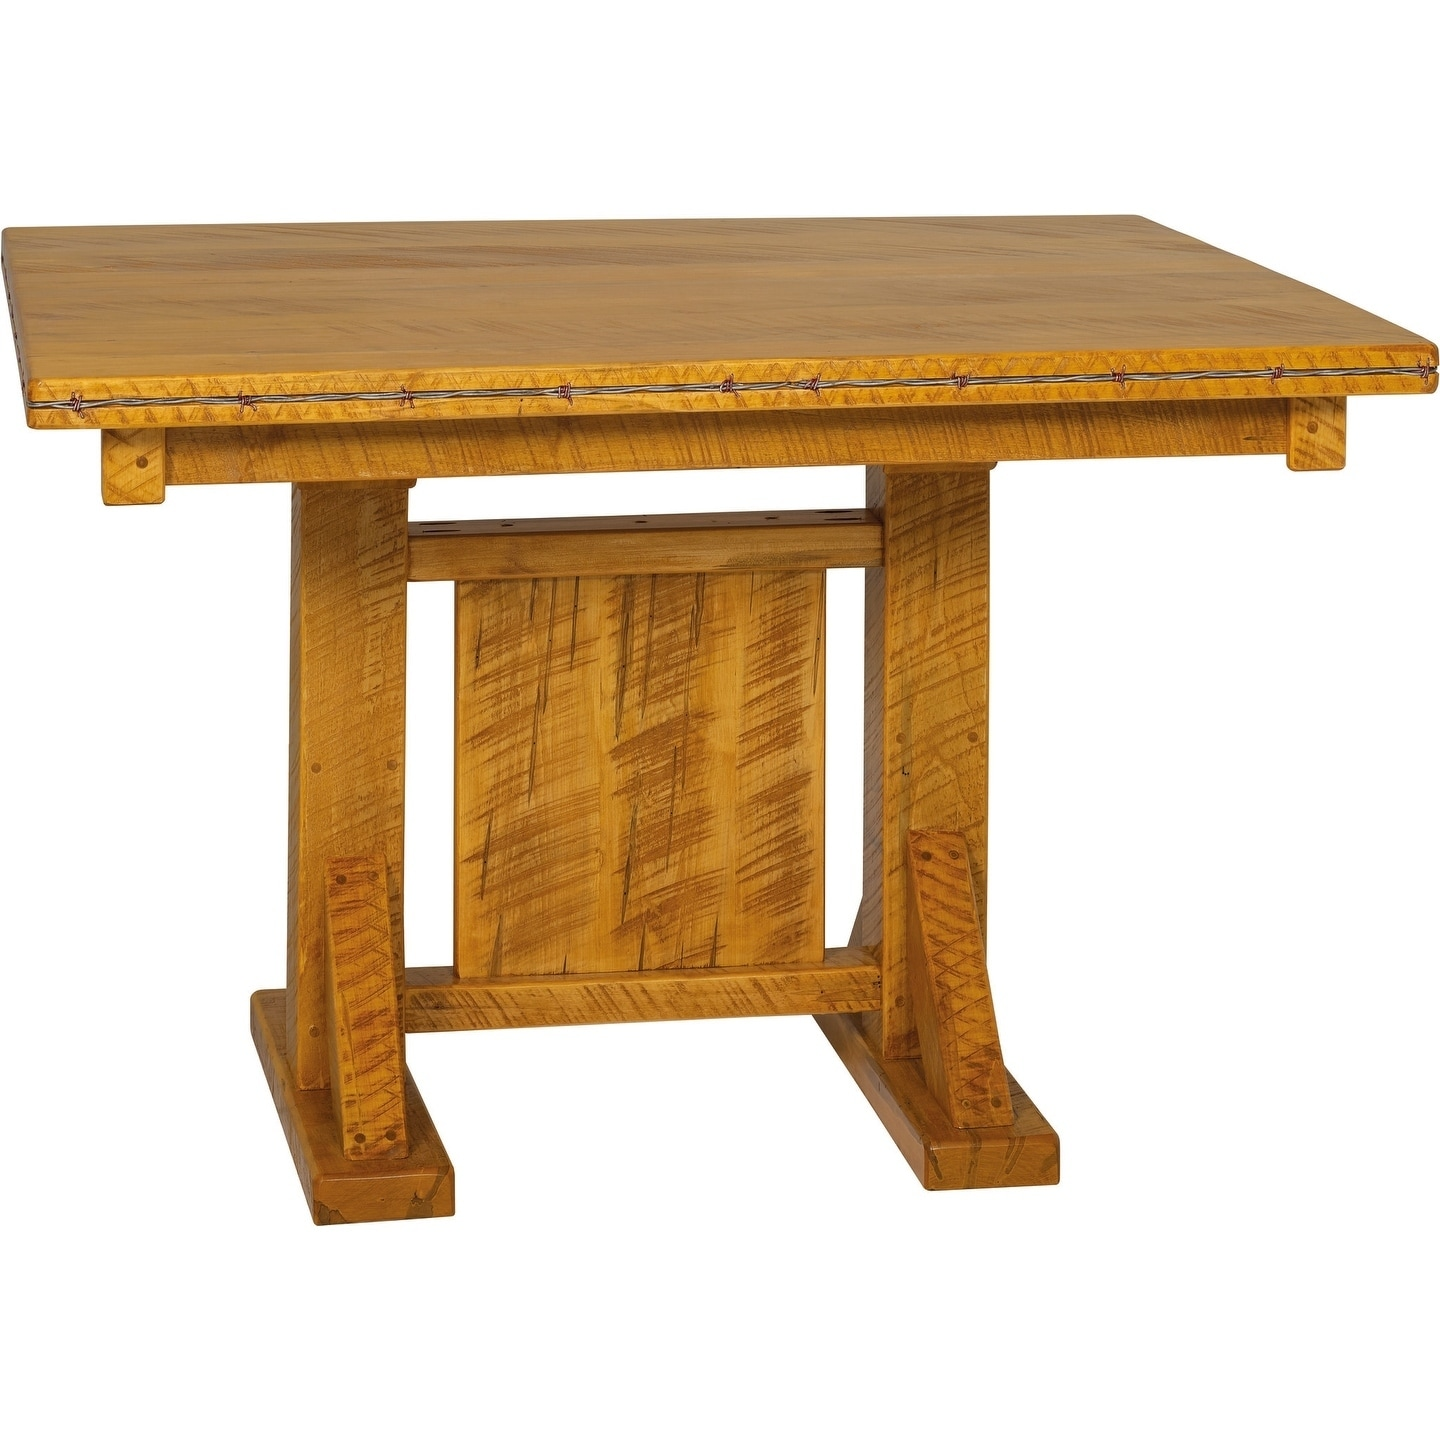 Western Twist 42x48 Dining Table in Wormy Maple (Provincial Stain)